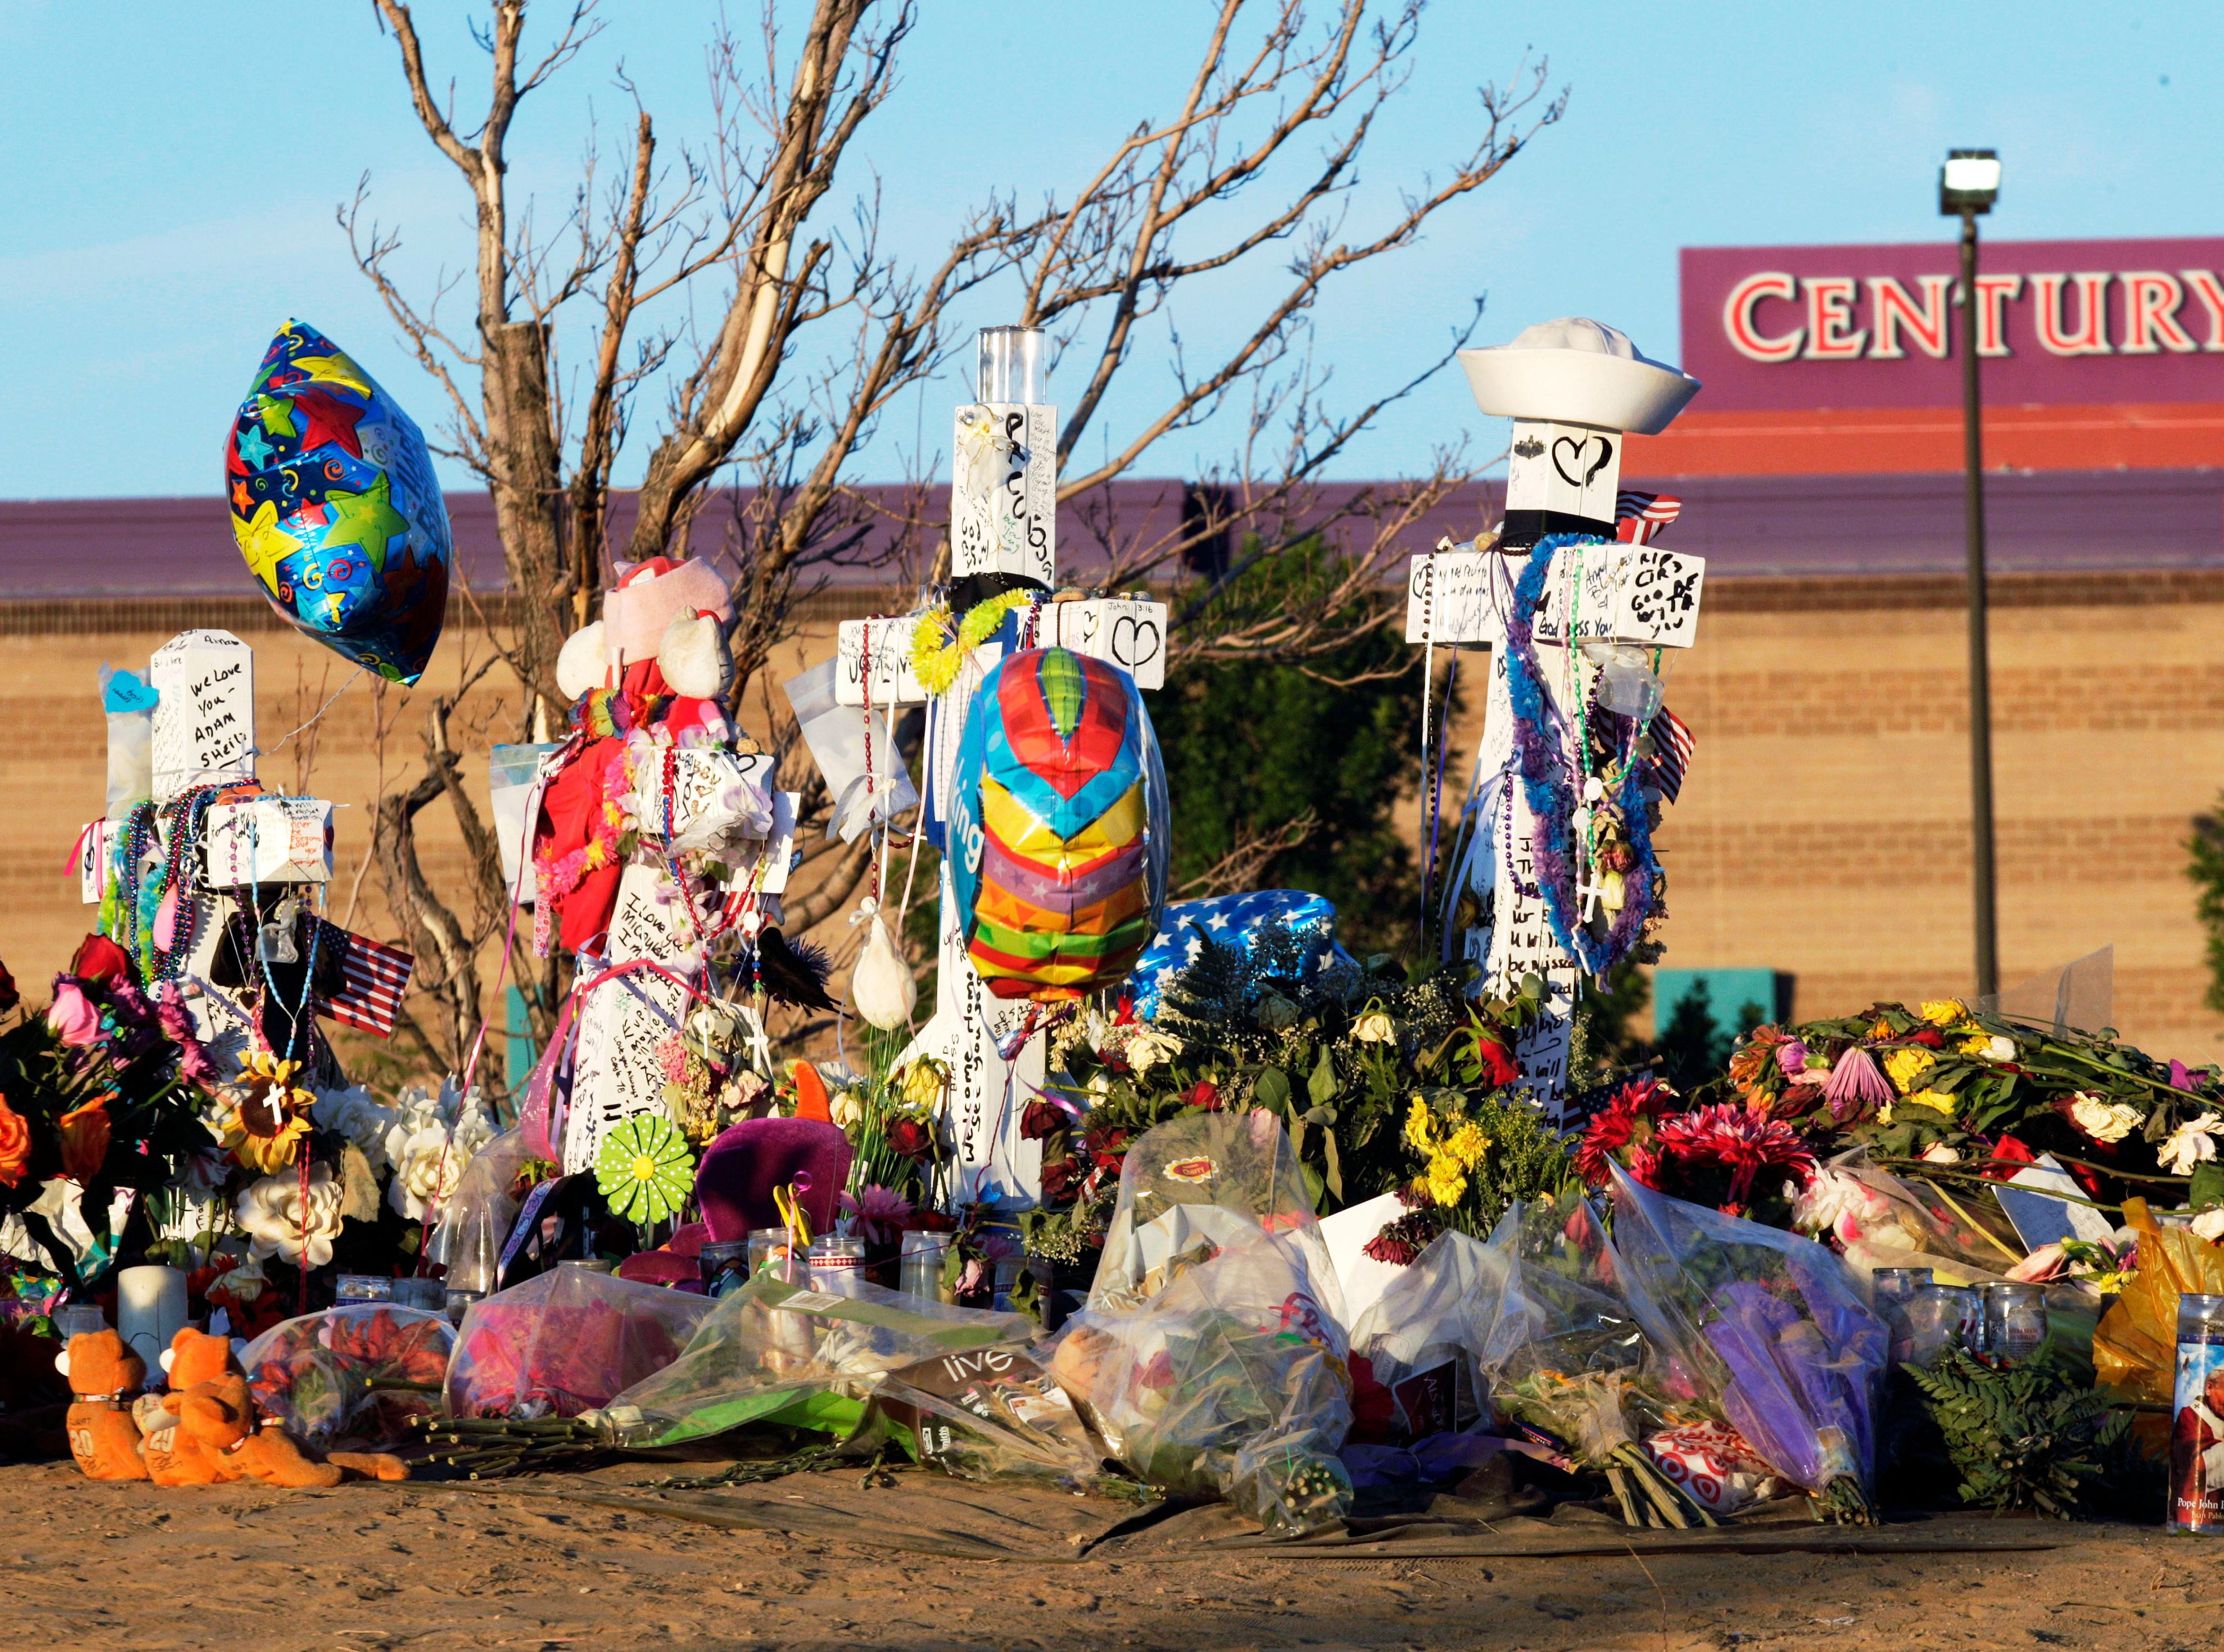 Century 16 movie theater   Aurora, Colorado   July 20, 2012   12 dead   70 wounded